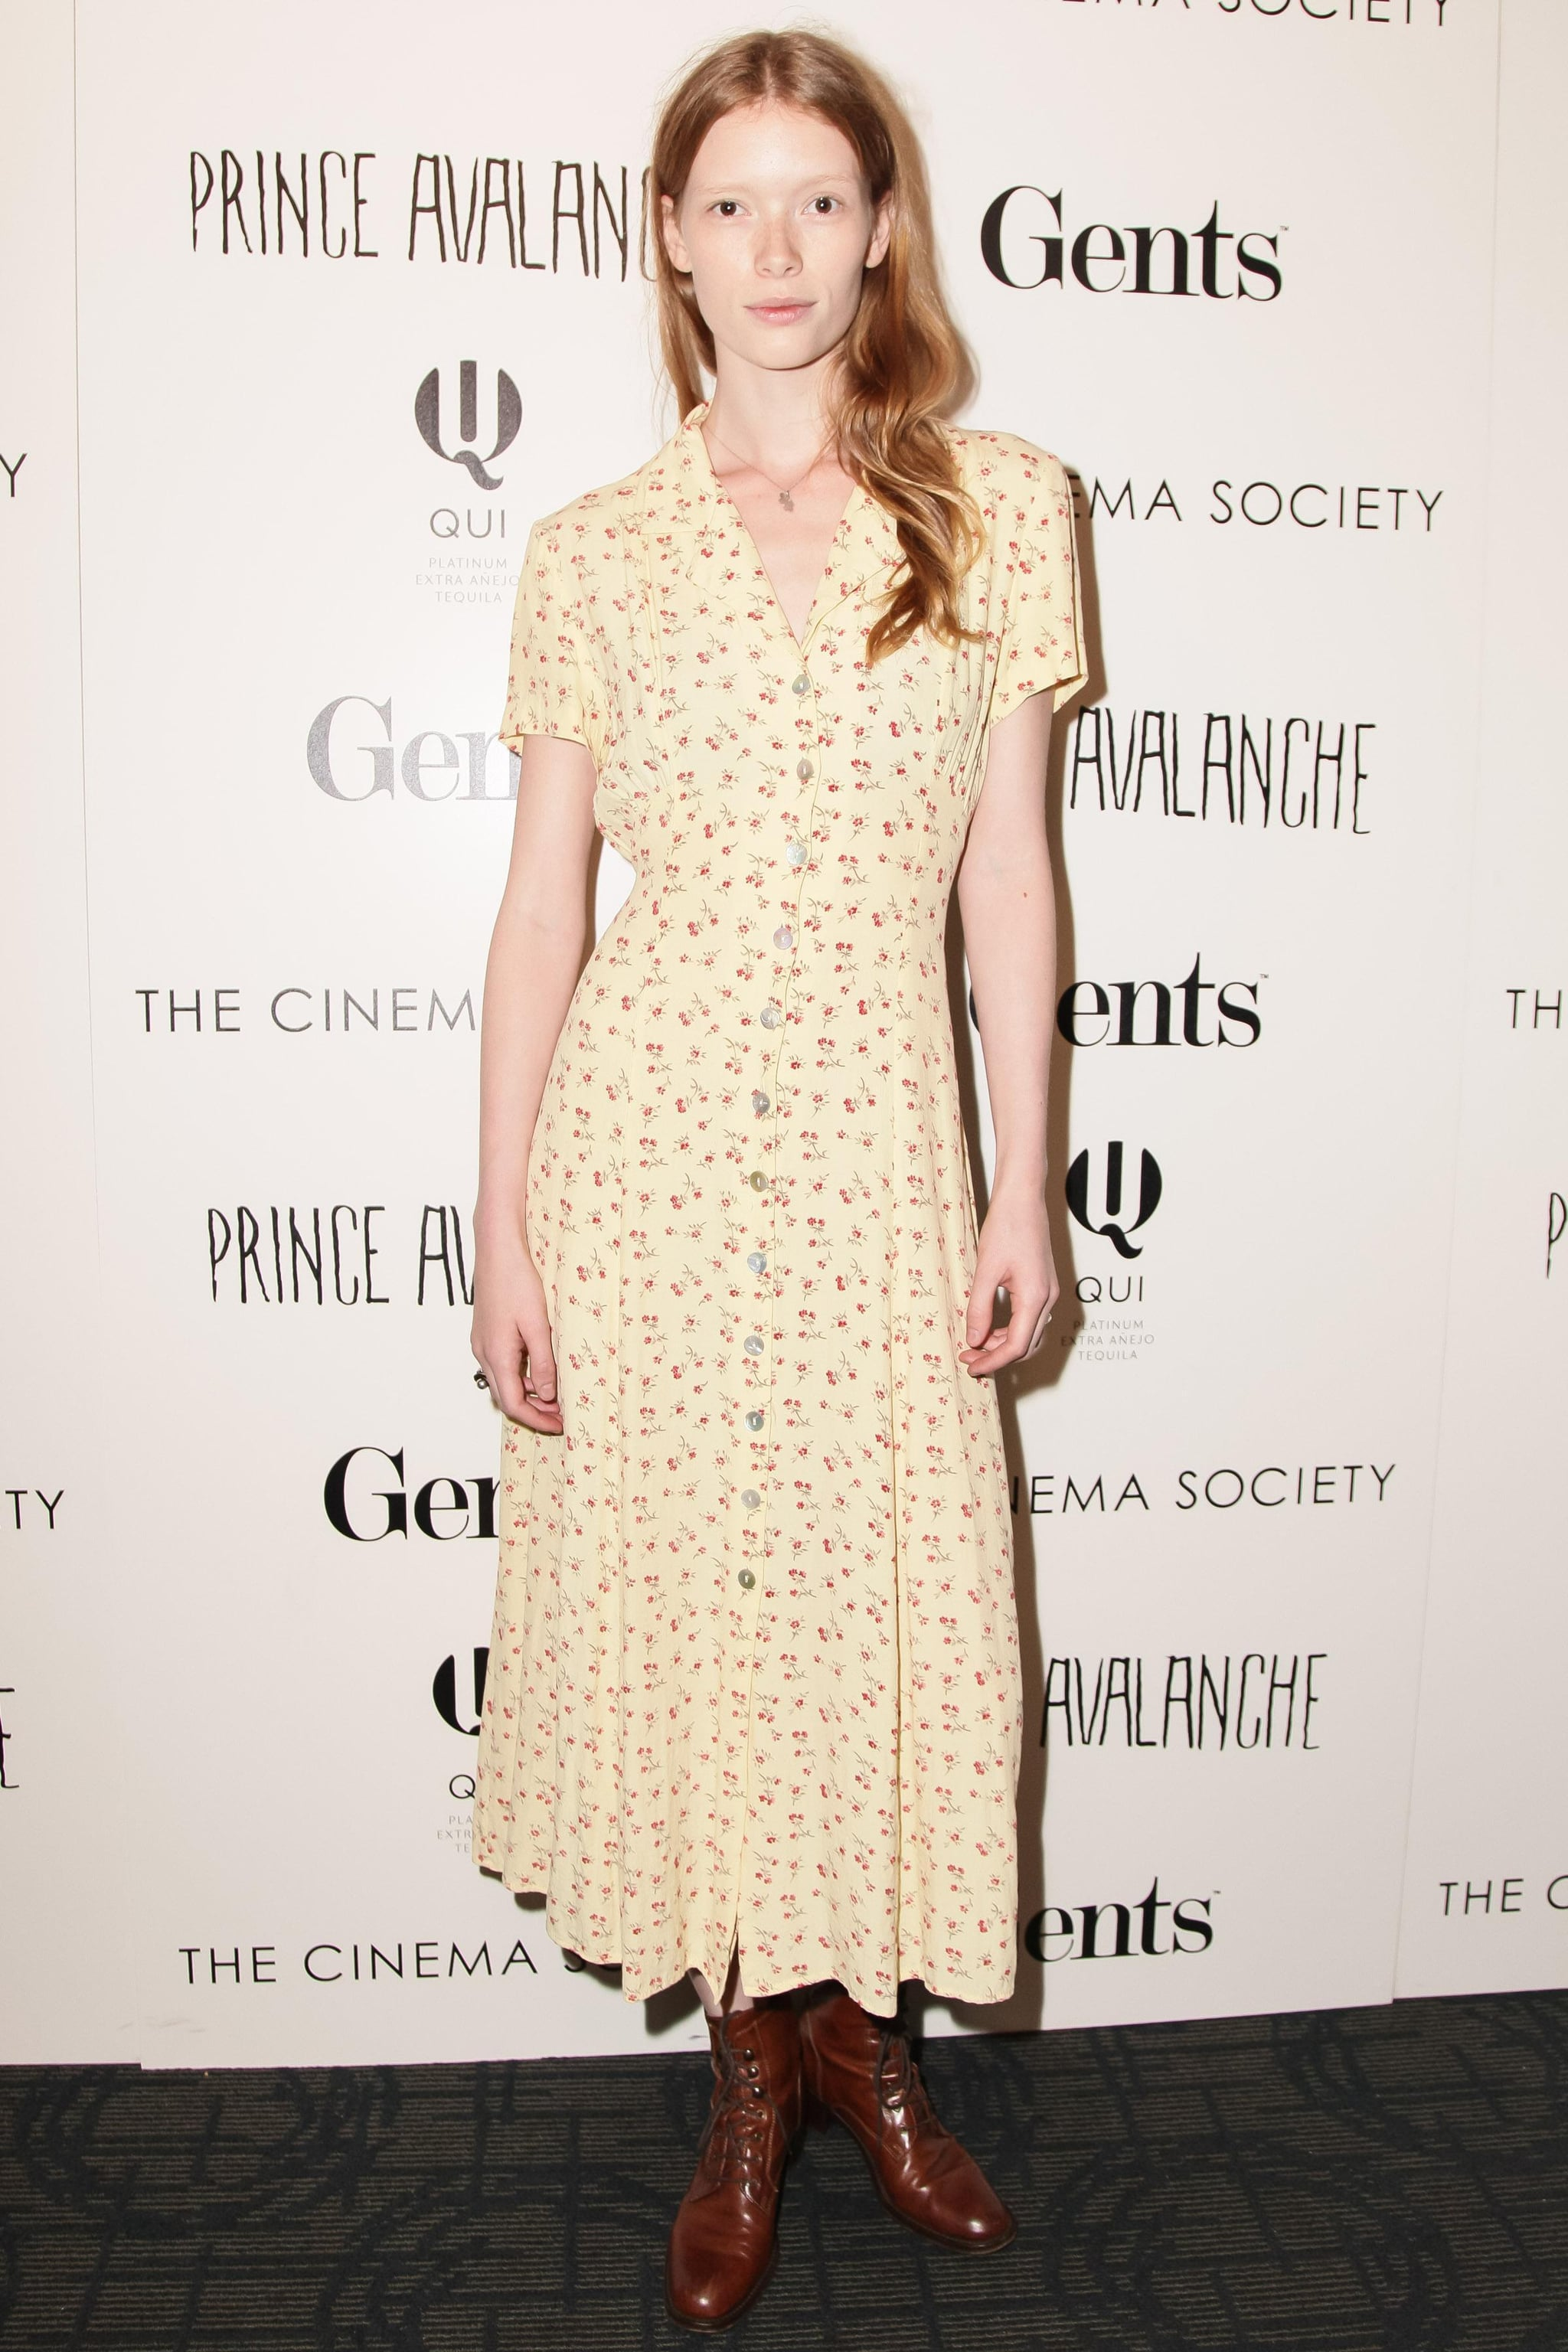 At the Prince Avalanche screening, Julia Hafstrom went bohemian in a floral maxi dress and boots.